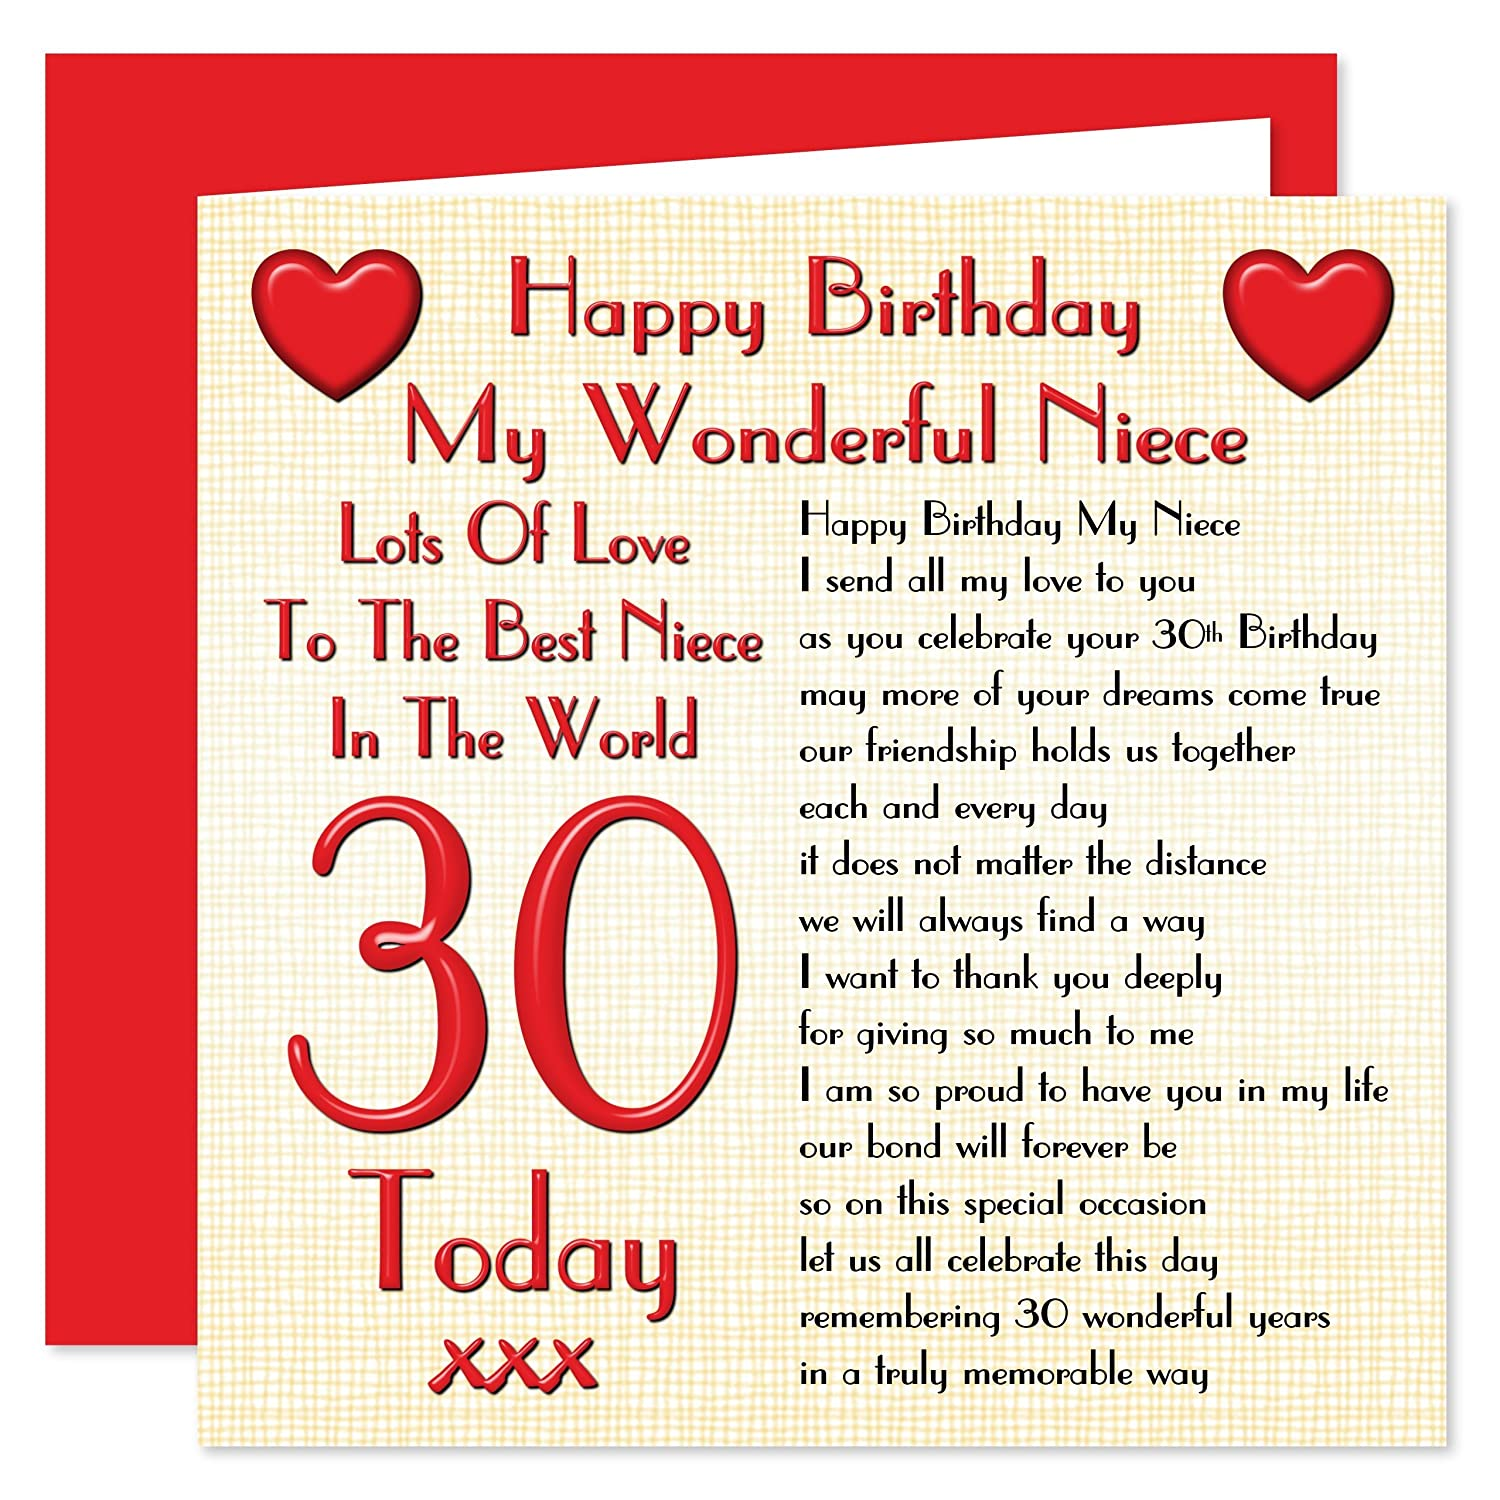 Niece 30th happy birthday card lots of love to the best niece in niece 30th happy birthday card lots of love to the best niece in the world 30 today amazon office products kristyandbryce Choice Image